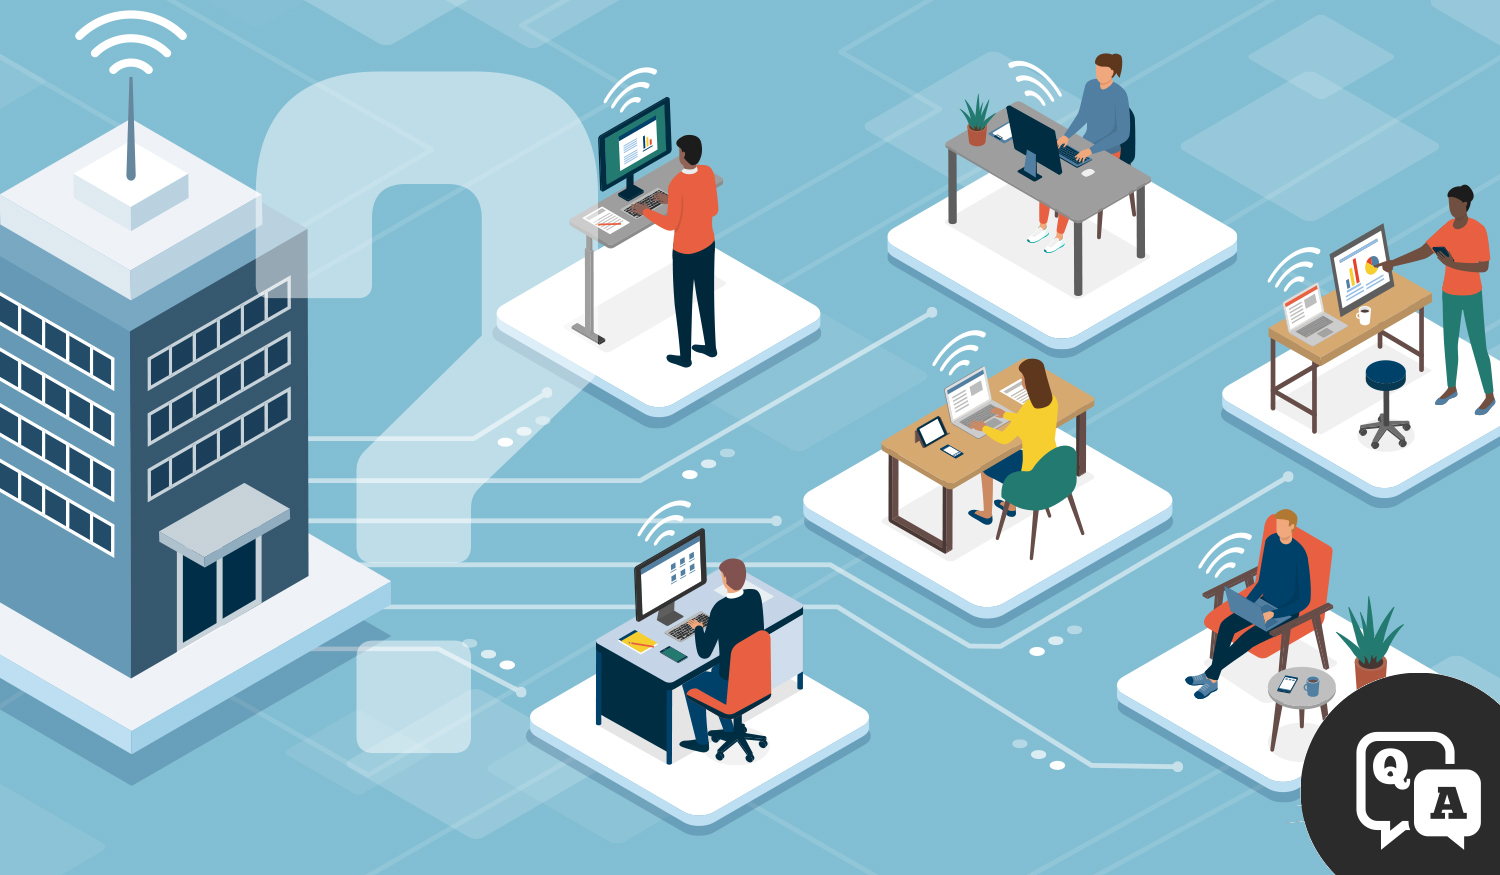 Unified Communications as a Service